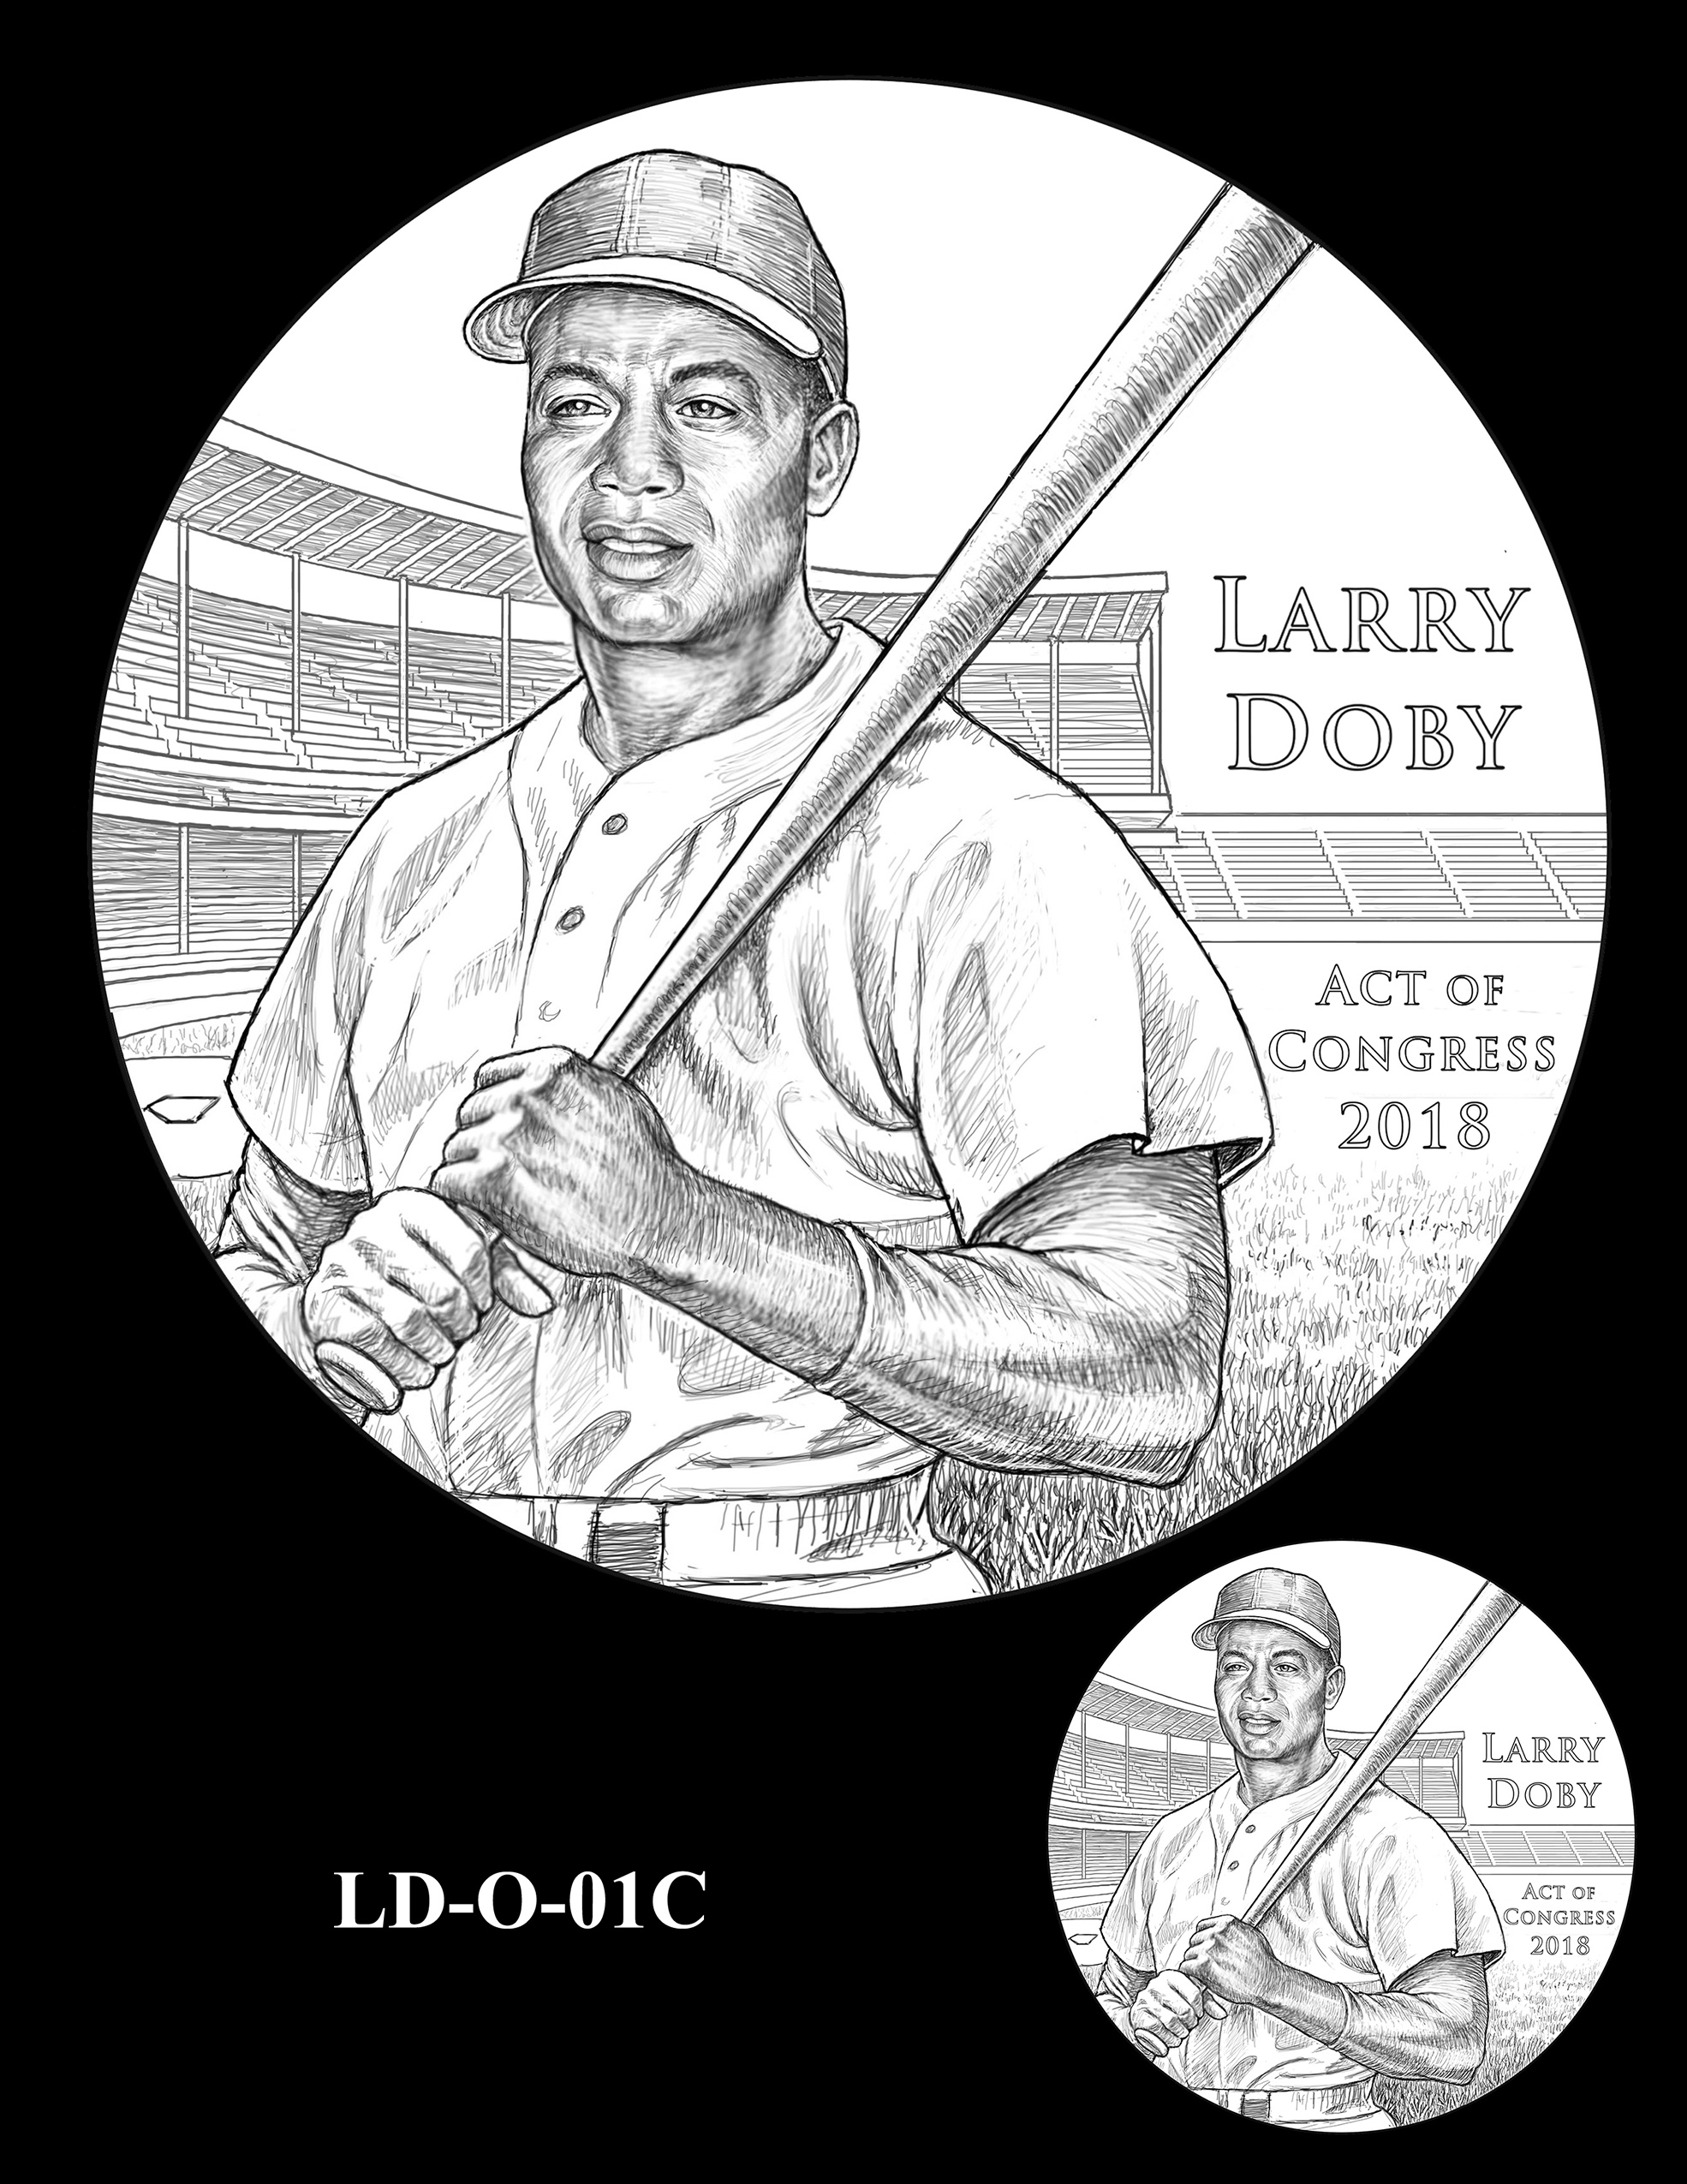 LD-O-01C -- Larry Doby Congressional Gold Medal